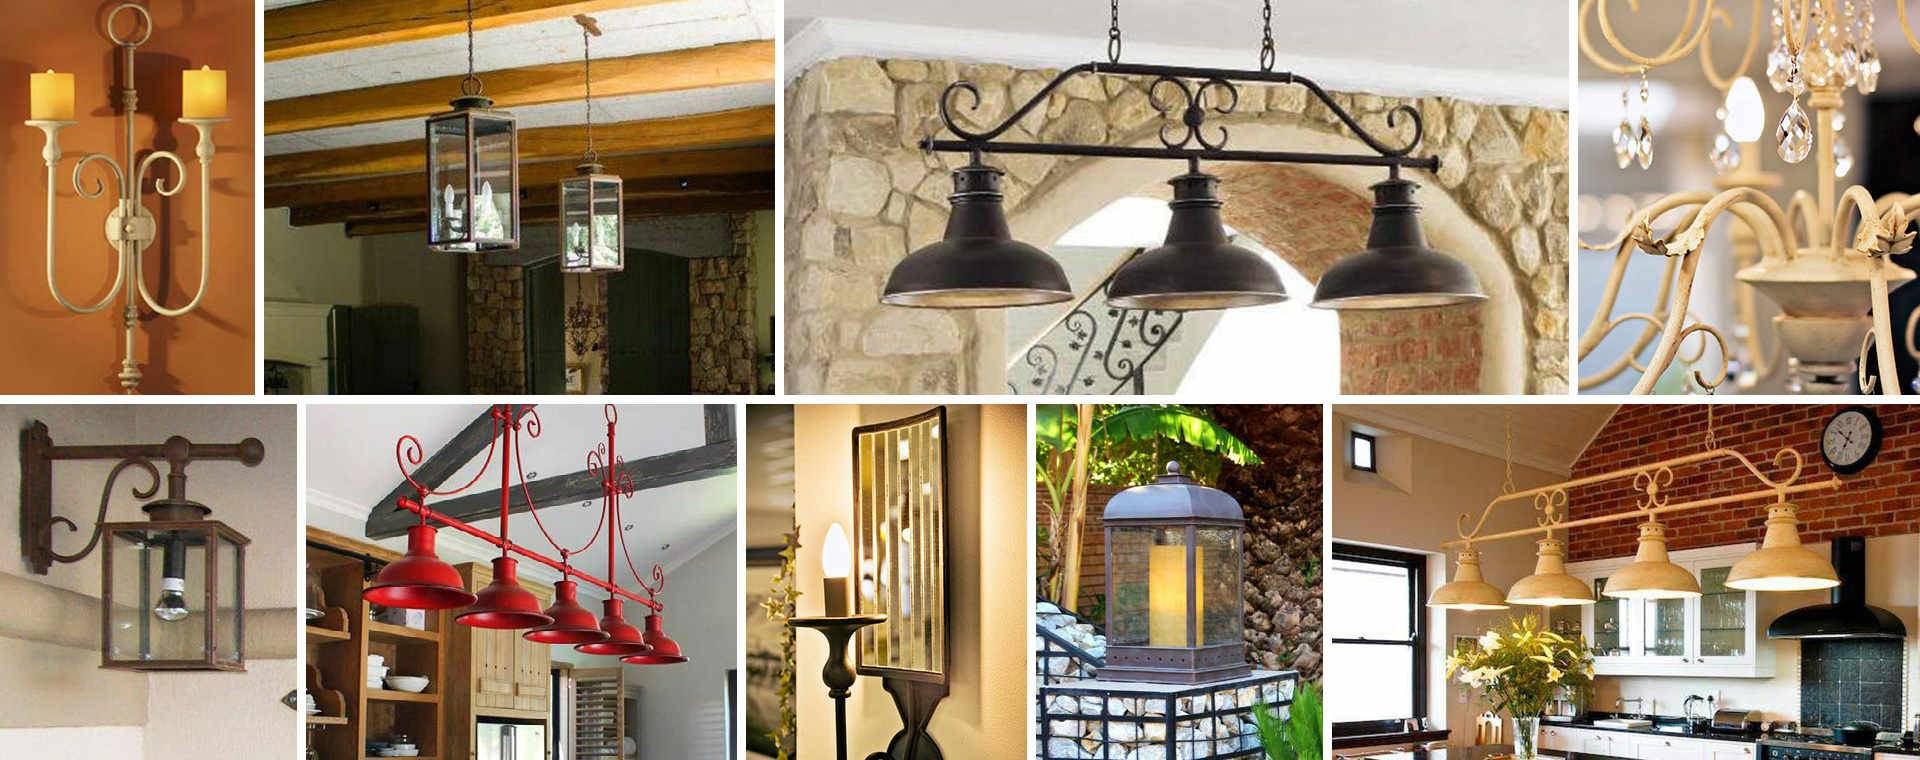 Custom-elcetrical-lighting-port-elizabeth